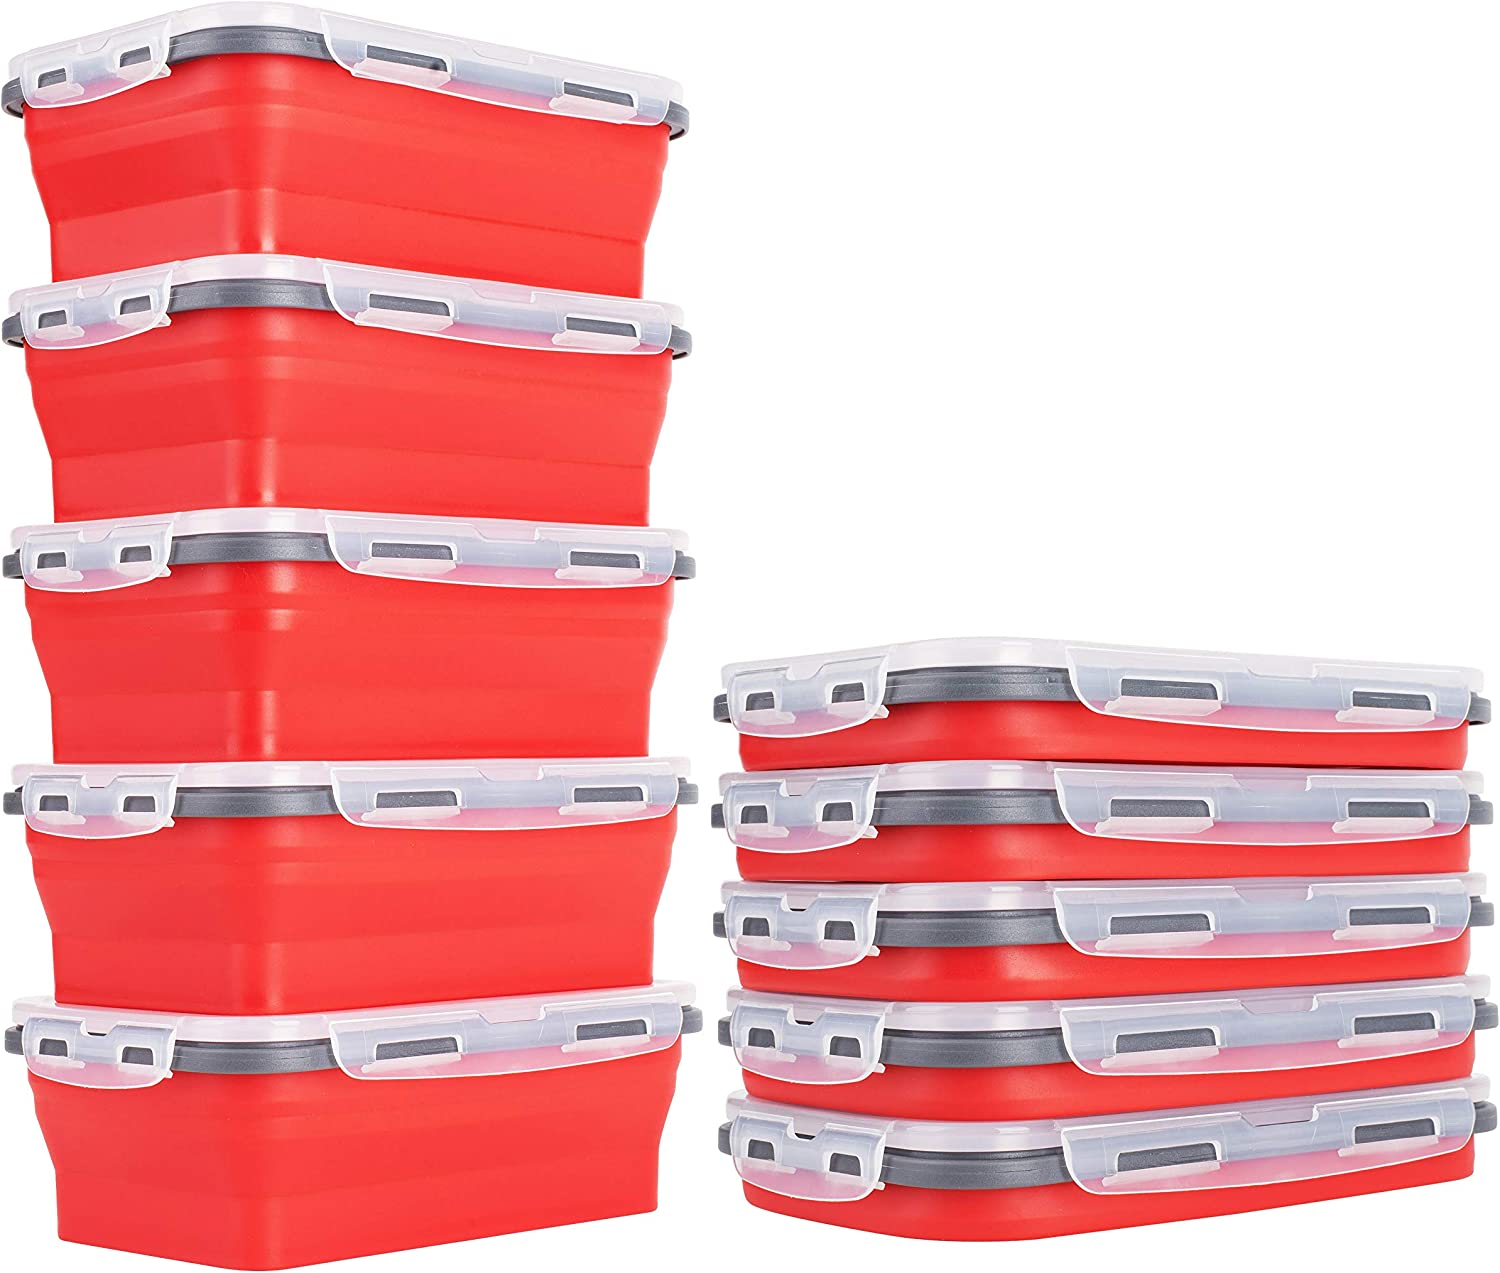 5 Collapsible Food Storage Containers With Lids. 5th Container Free When 4 (6-Cup) Candy Apple Red Silicone Food Storage Containers Are Purchased. We Use Food Safe Silicone (XL-1200ml).